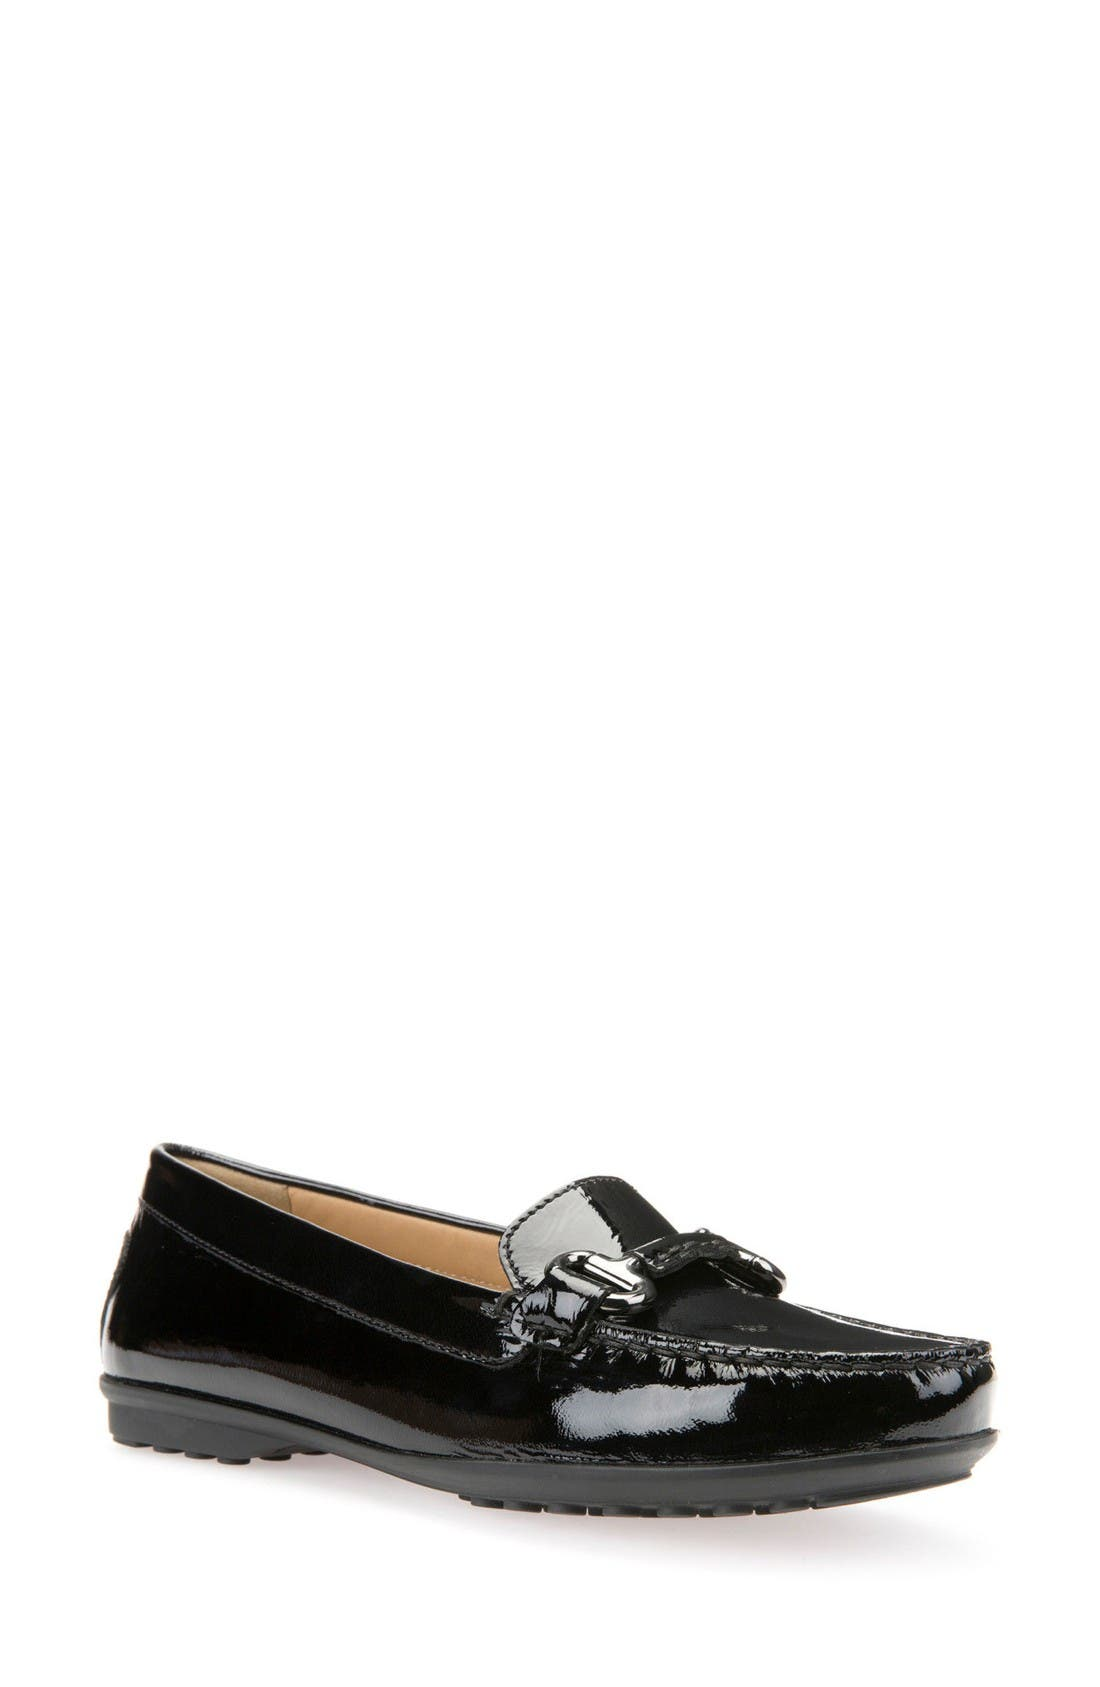 Alternate Image 1 Selected - Geox Elidia Bit Water Resistant Loafer (Women)